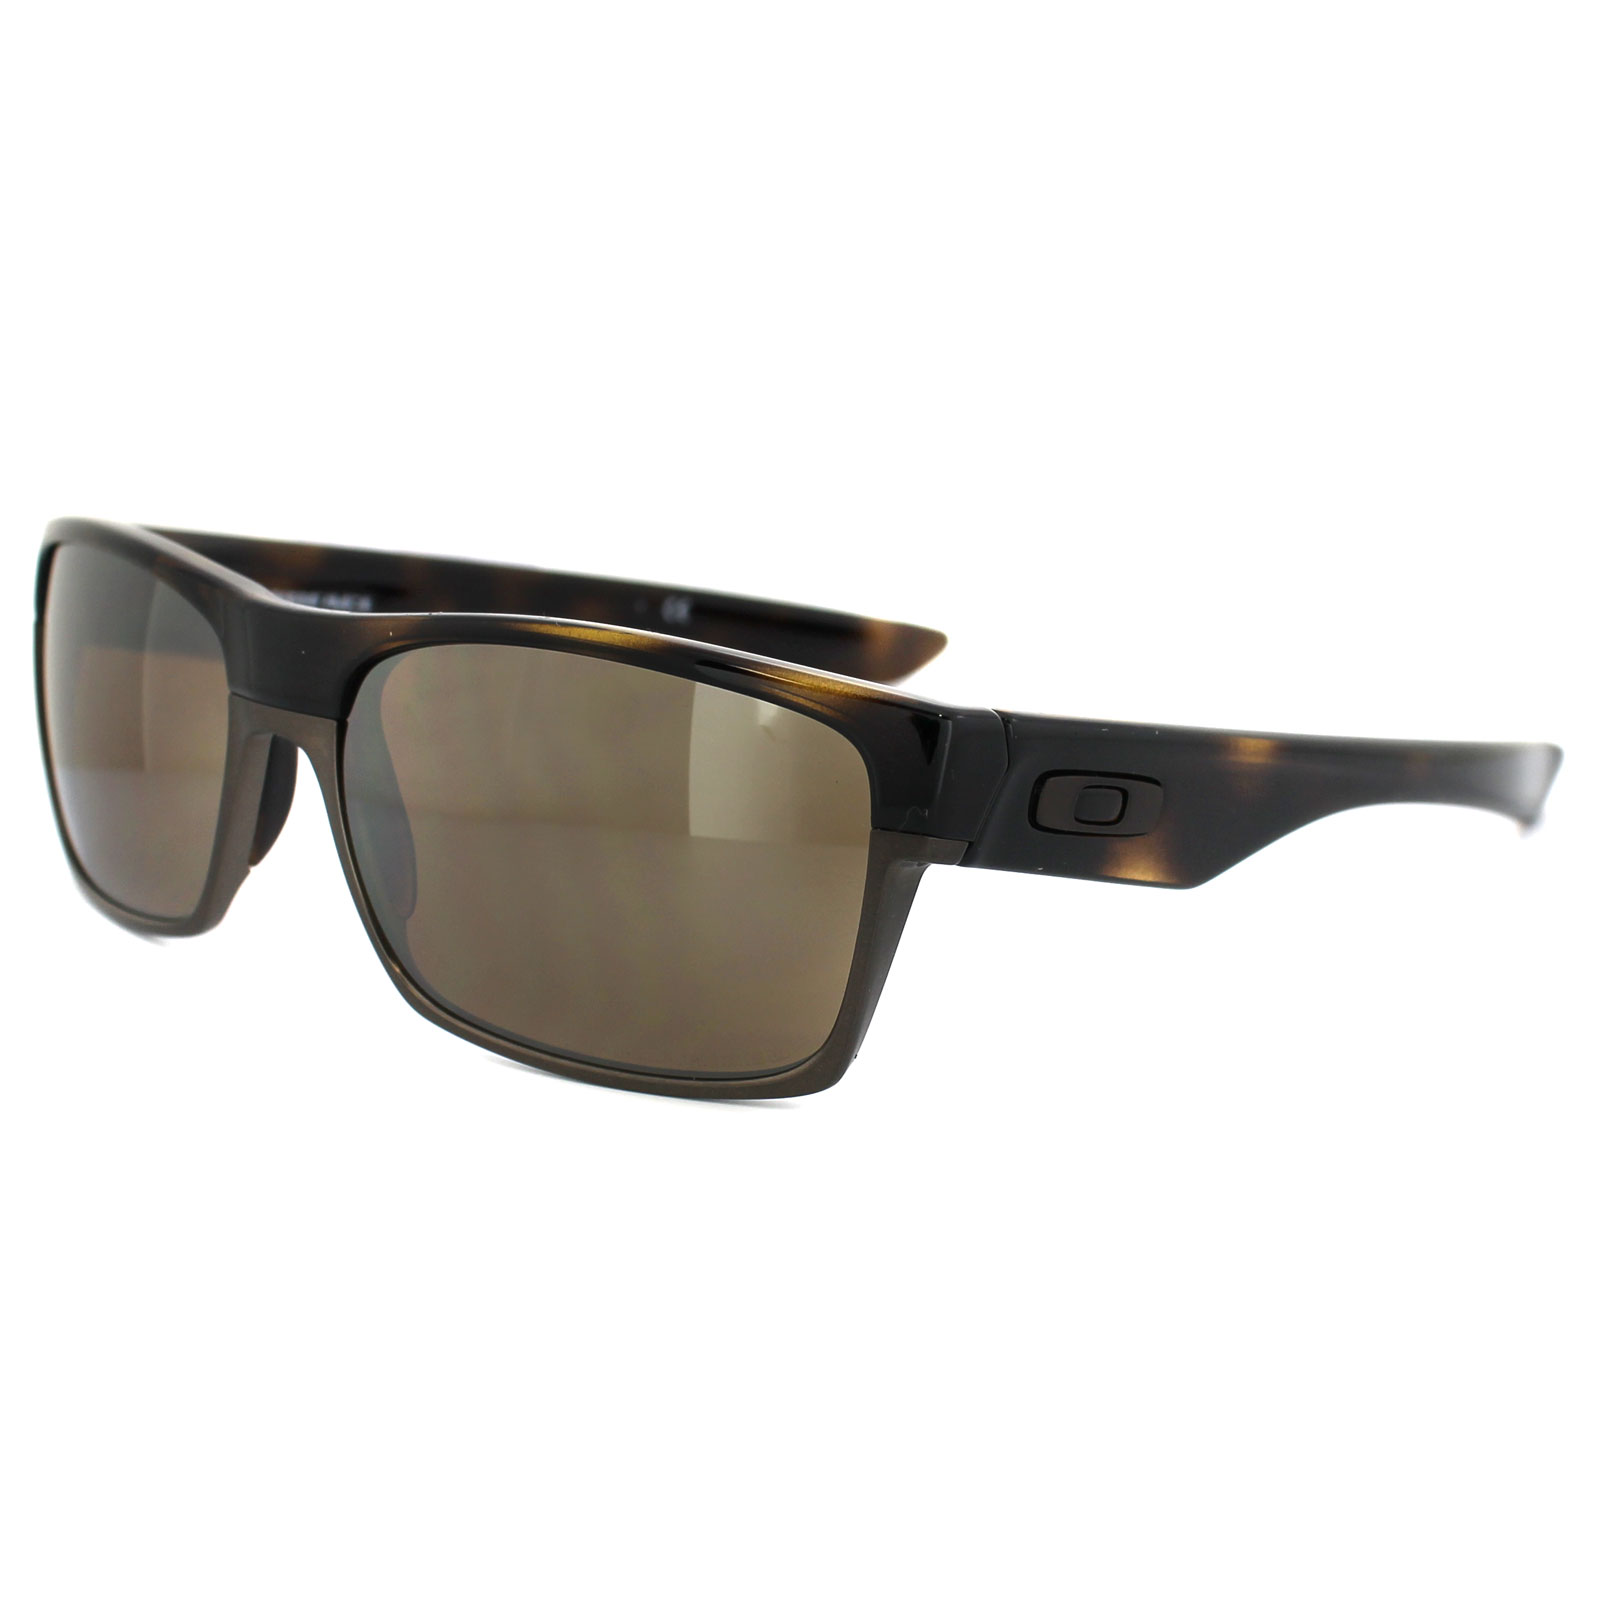 d0a53fa51a Oakley Polarized Lens Review « Heritage Malta